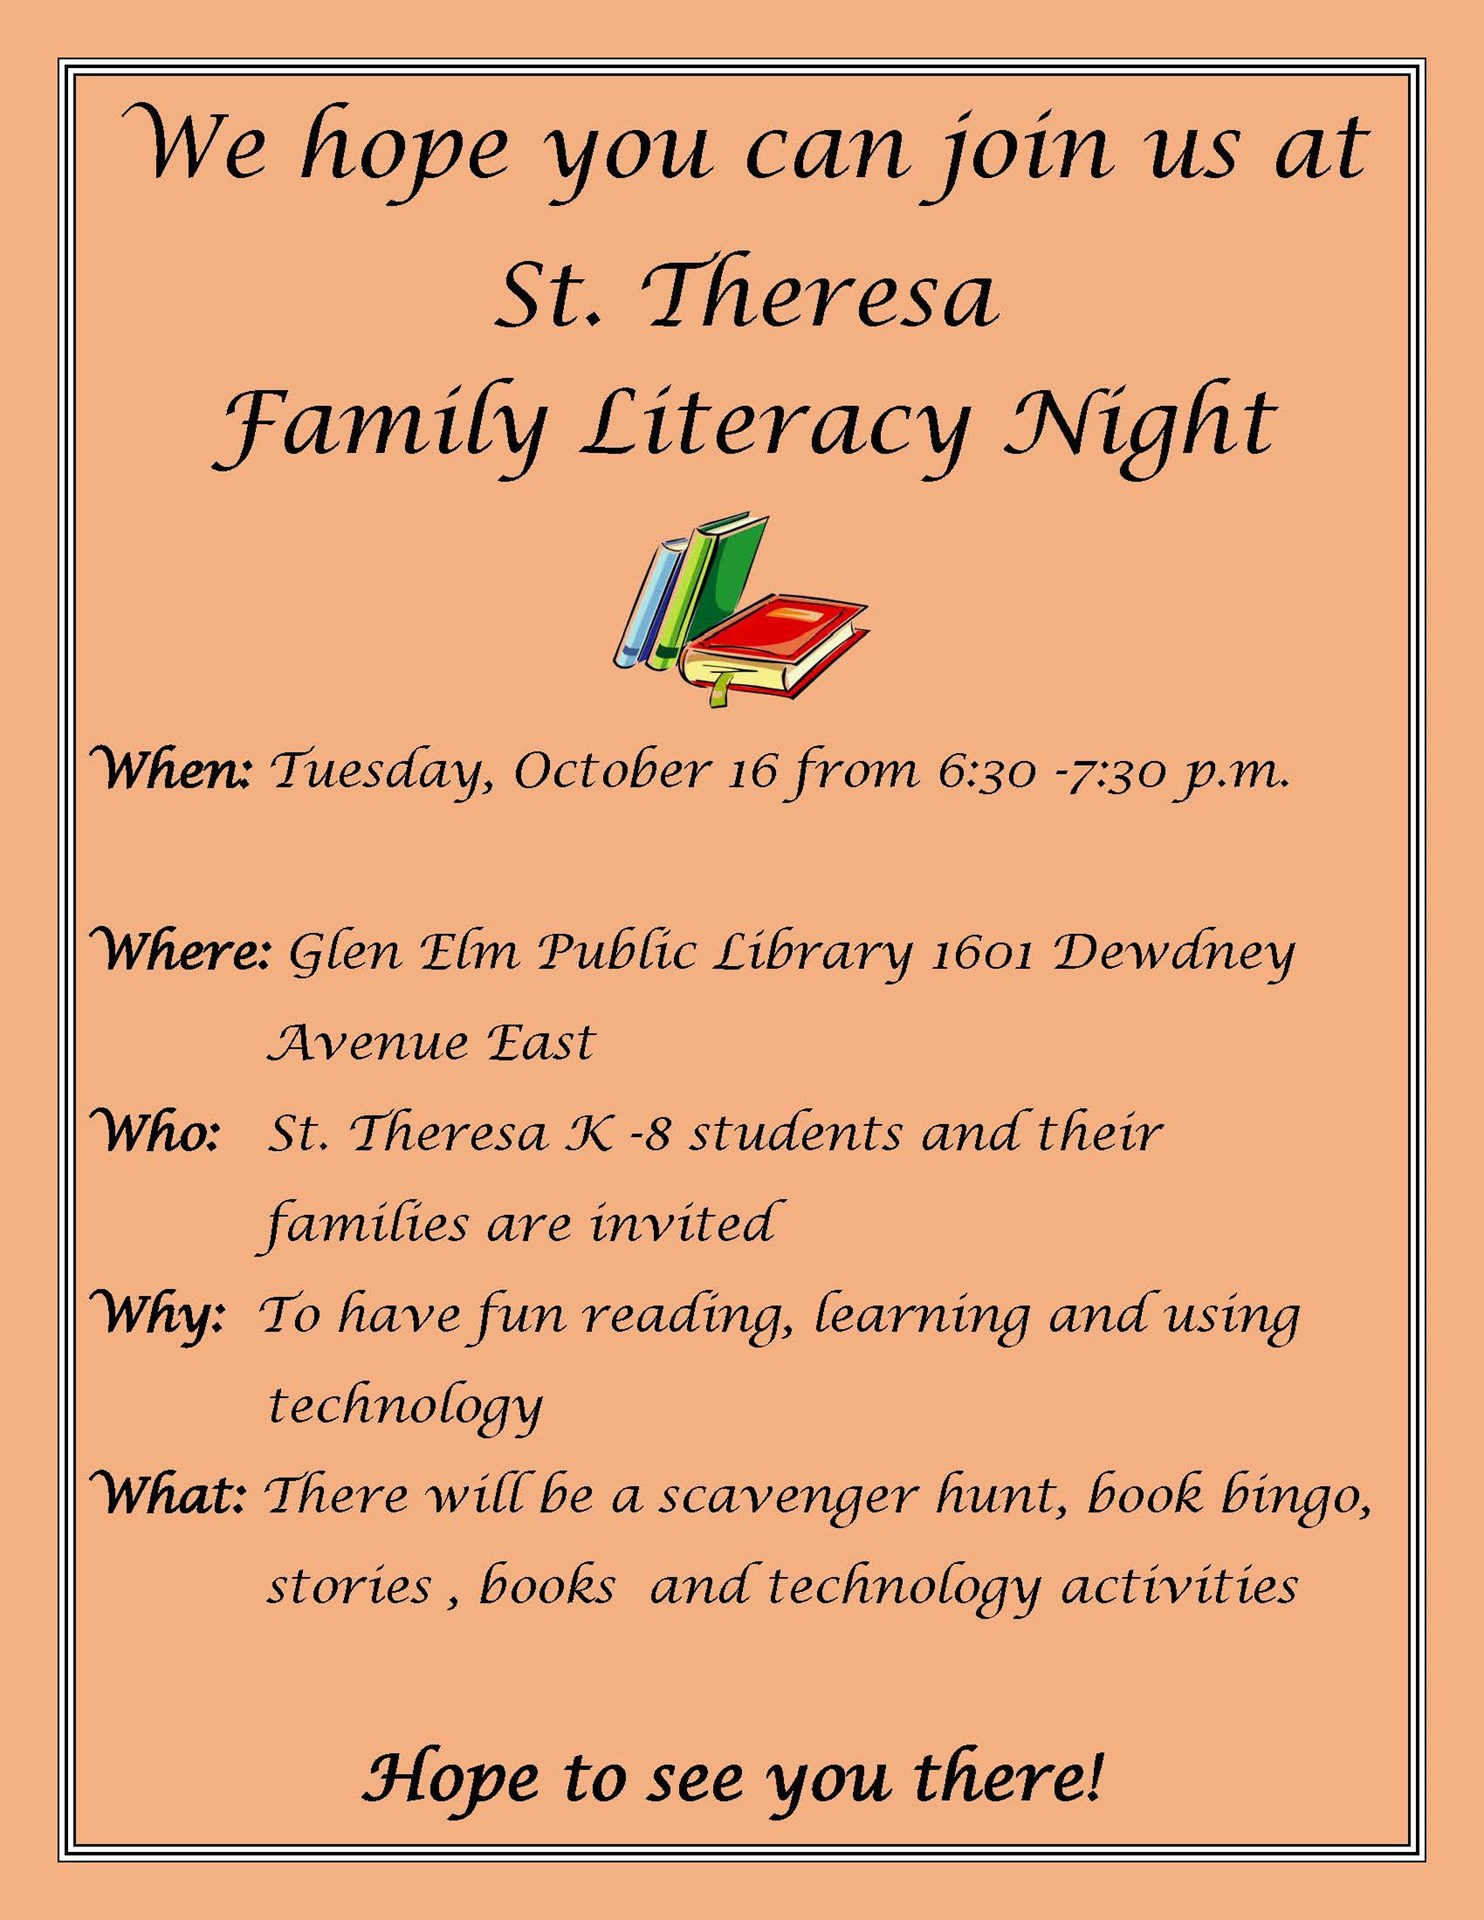 Family literacy nightmemo.jpg